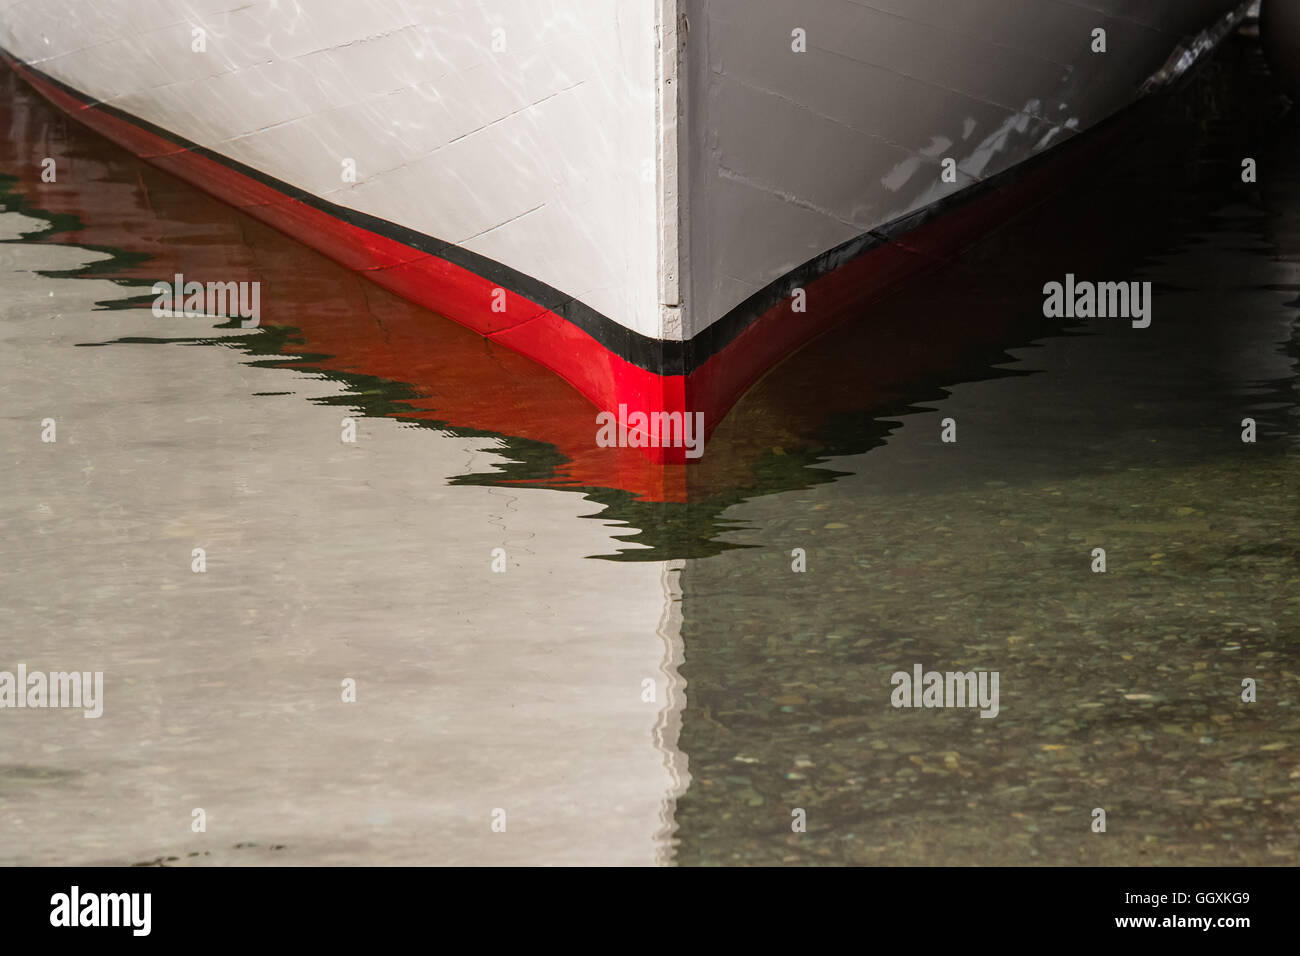 Red Bow of Boat at Waterline in shallow water - Stock Image